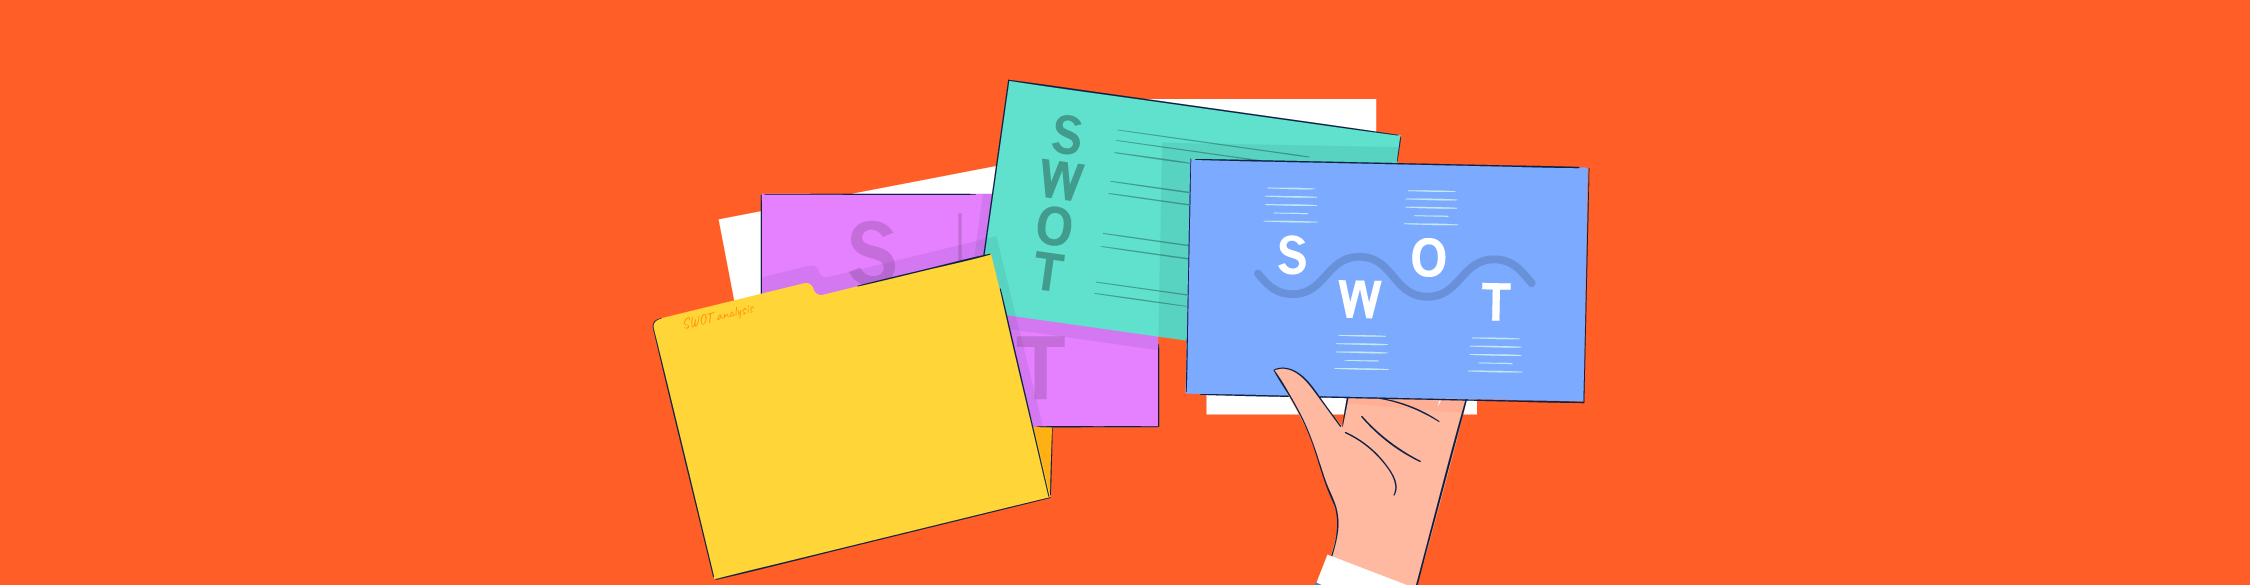 An illustration of SWOT analysis presentation slides being held up by a hand.